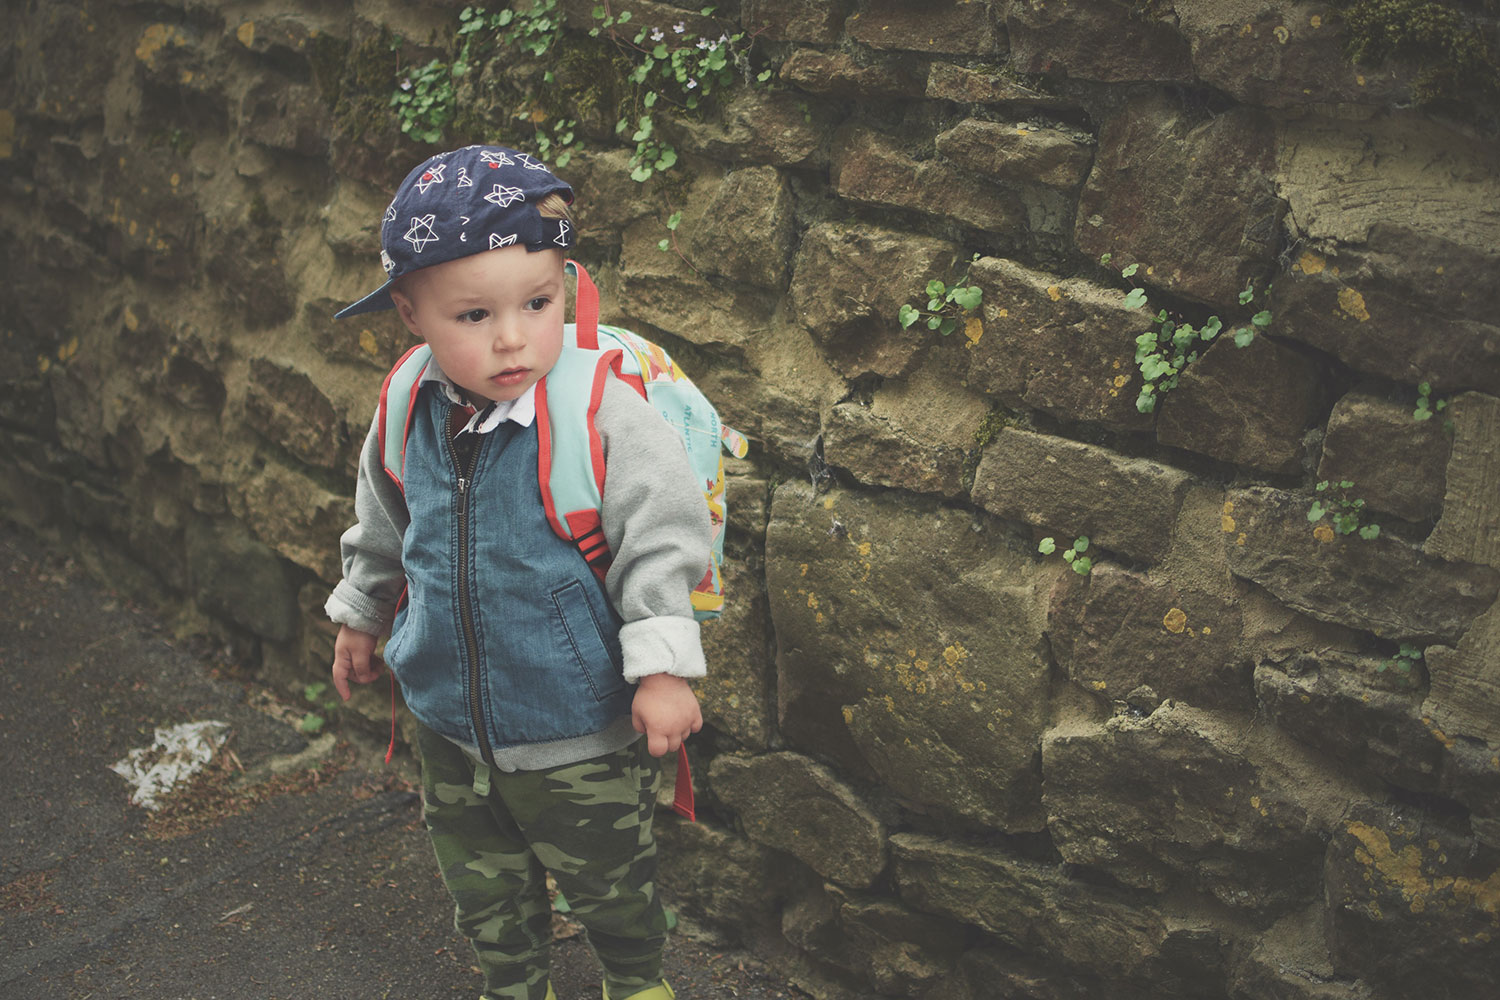 Fashion Friday; He's a Wild Adventurer // 040 - Toddler wearing Next starry baseball cap, H&M denim and sweatshirt jacket, Baby Gap camouflage leggings, green Crocs shoes and world map kids backpack